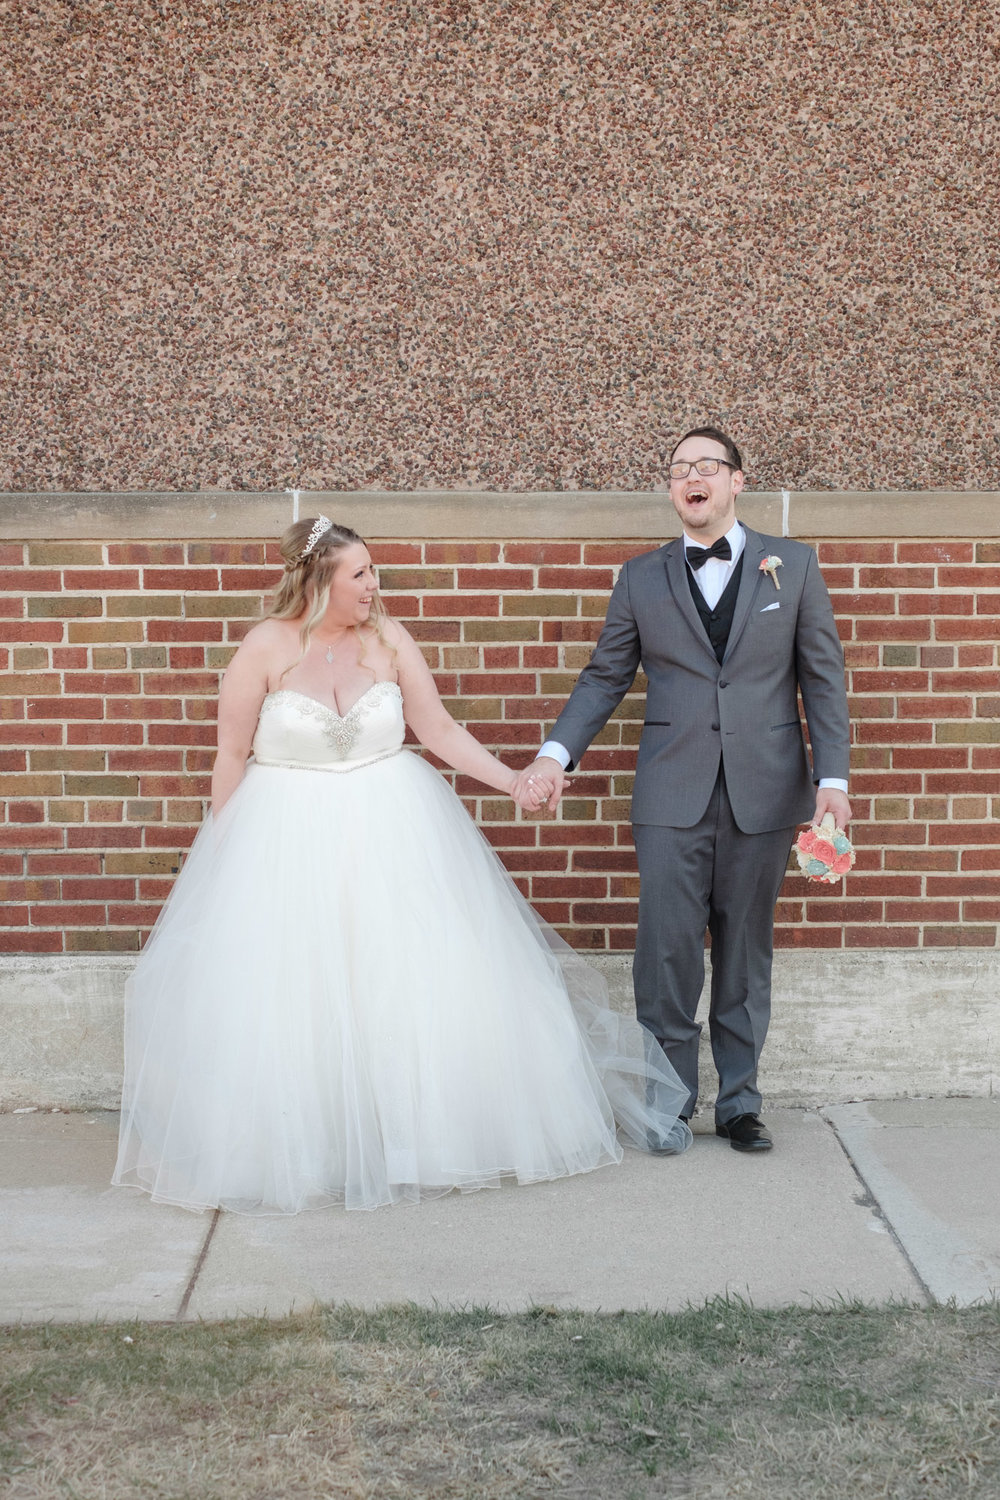 Bride and groom holding hands after wedding at the  Brink Lounge in Madison, Wisconsin